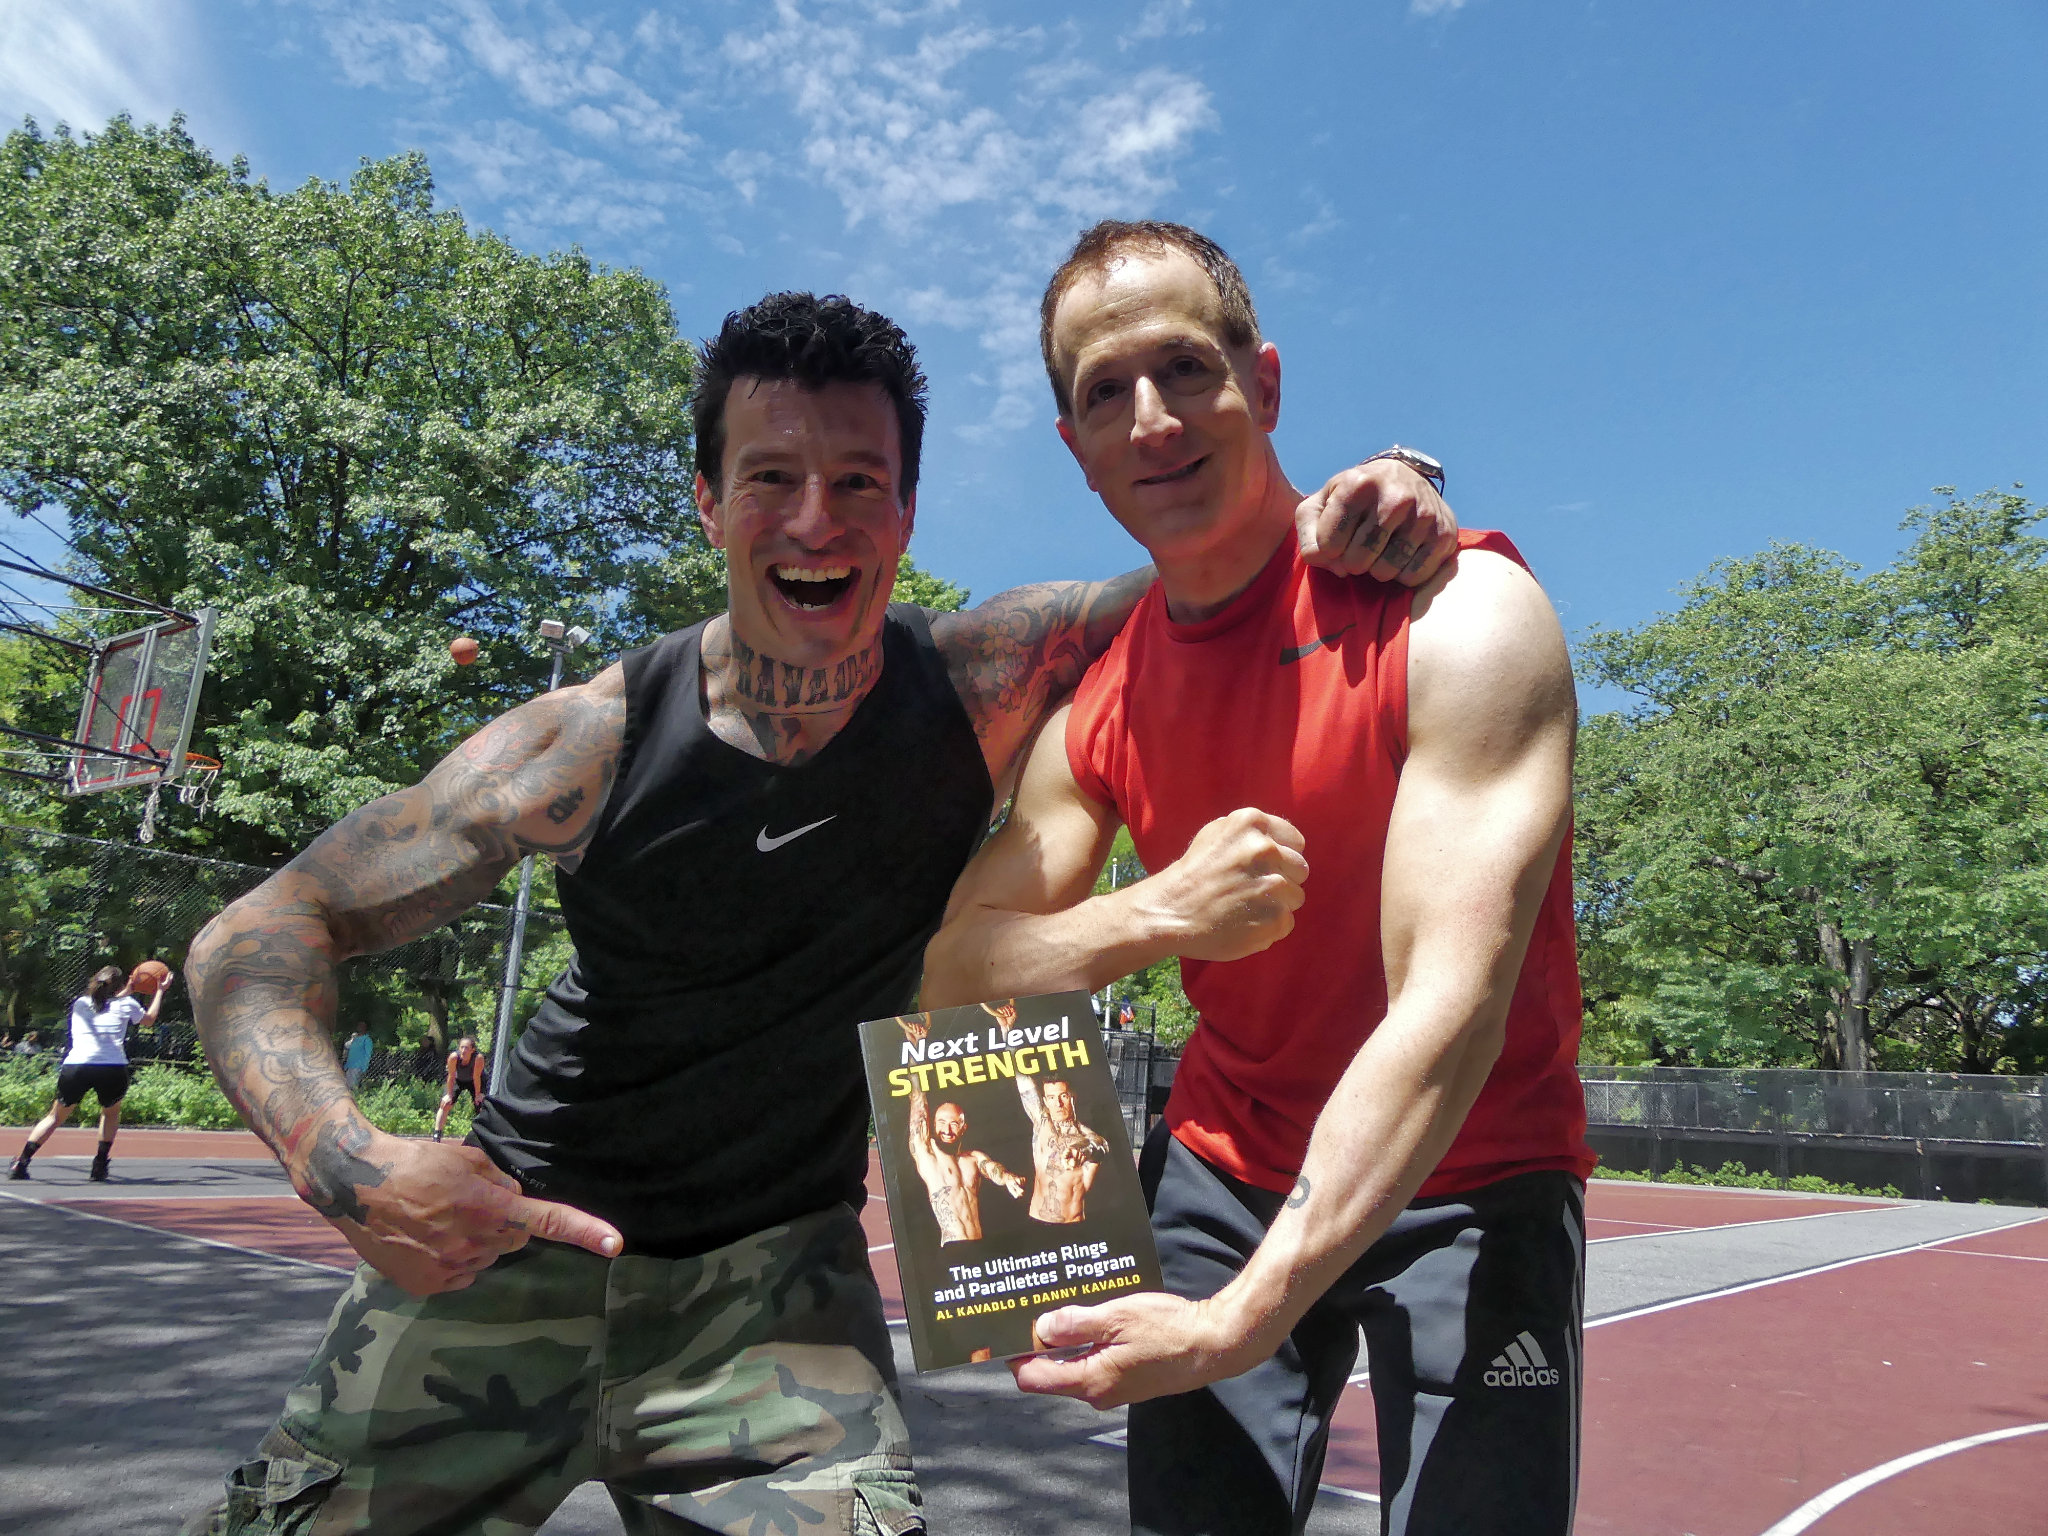 Danny Kavadlo with bootcamp participant and the newly release book Next Level Strength